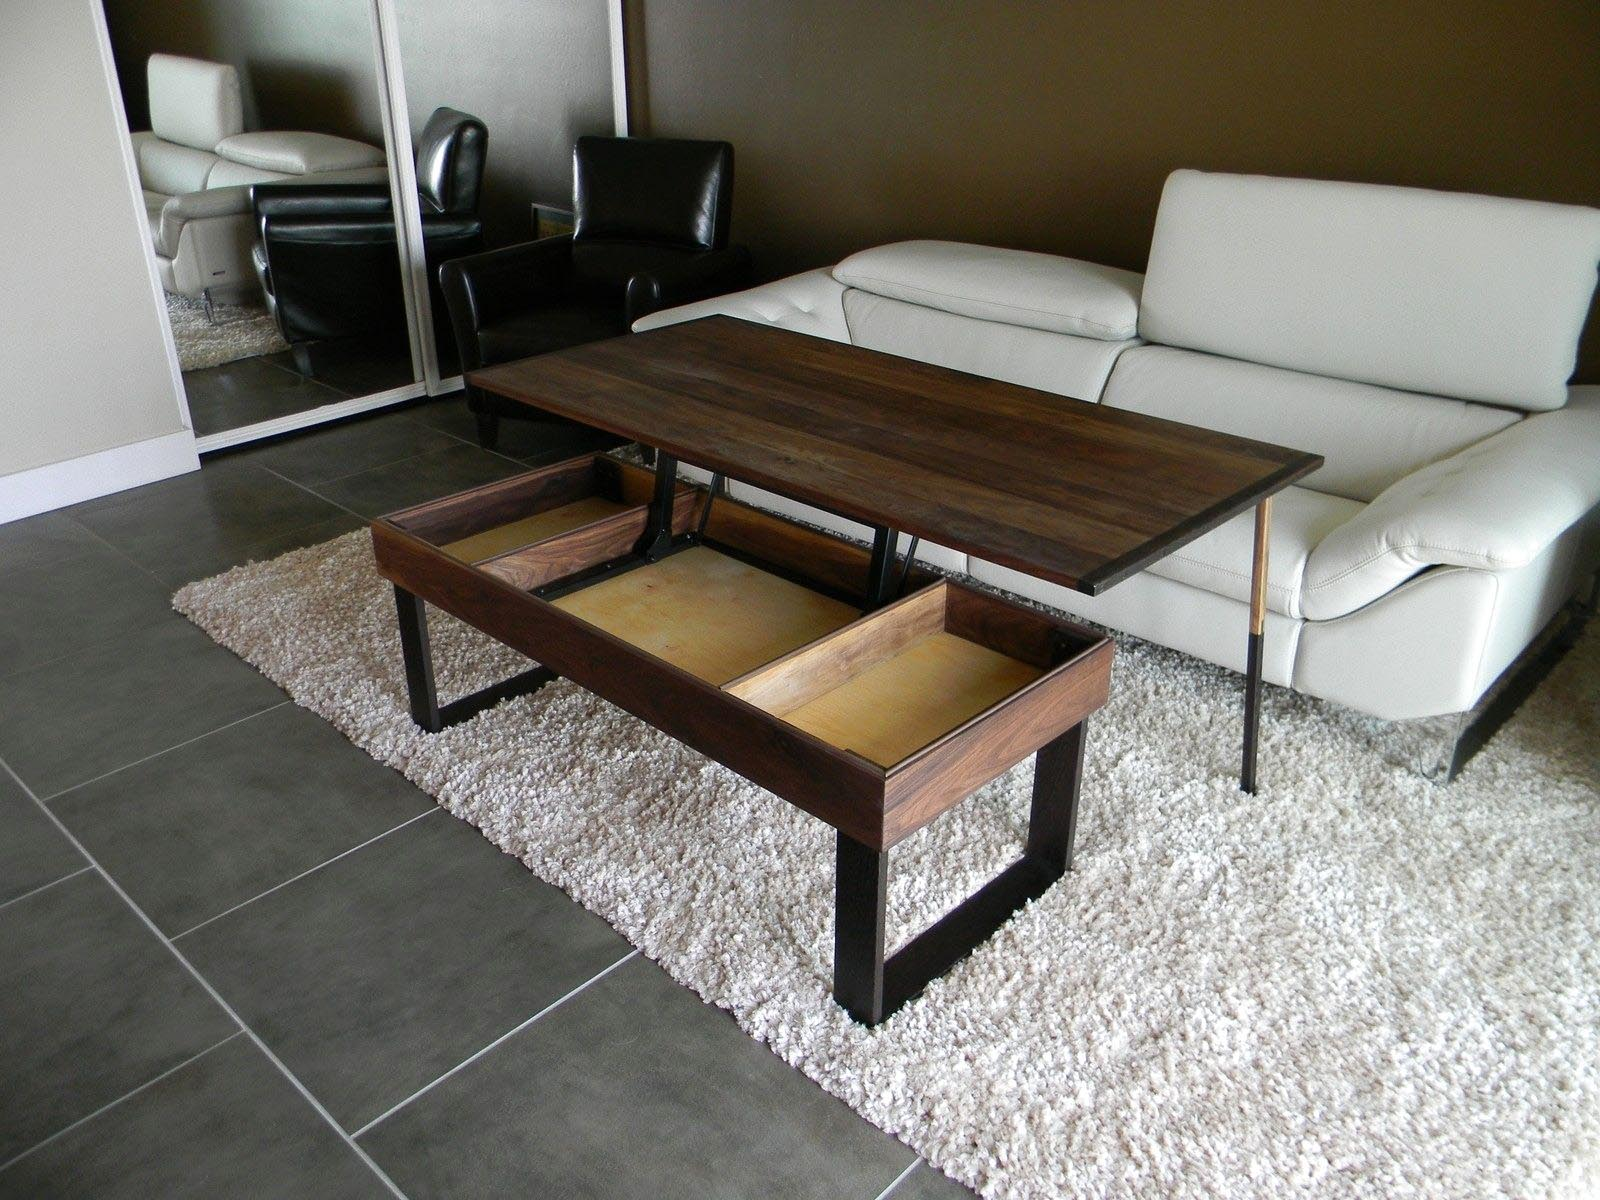 Ikea Coffee Table New in Photos of Creative